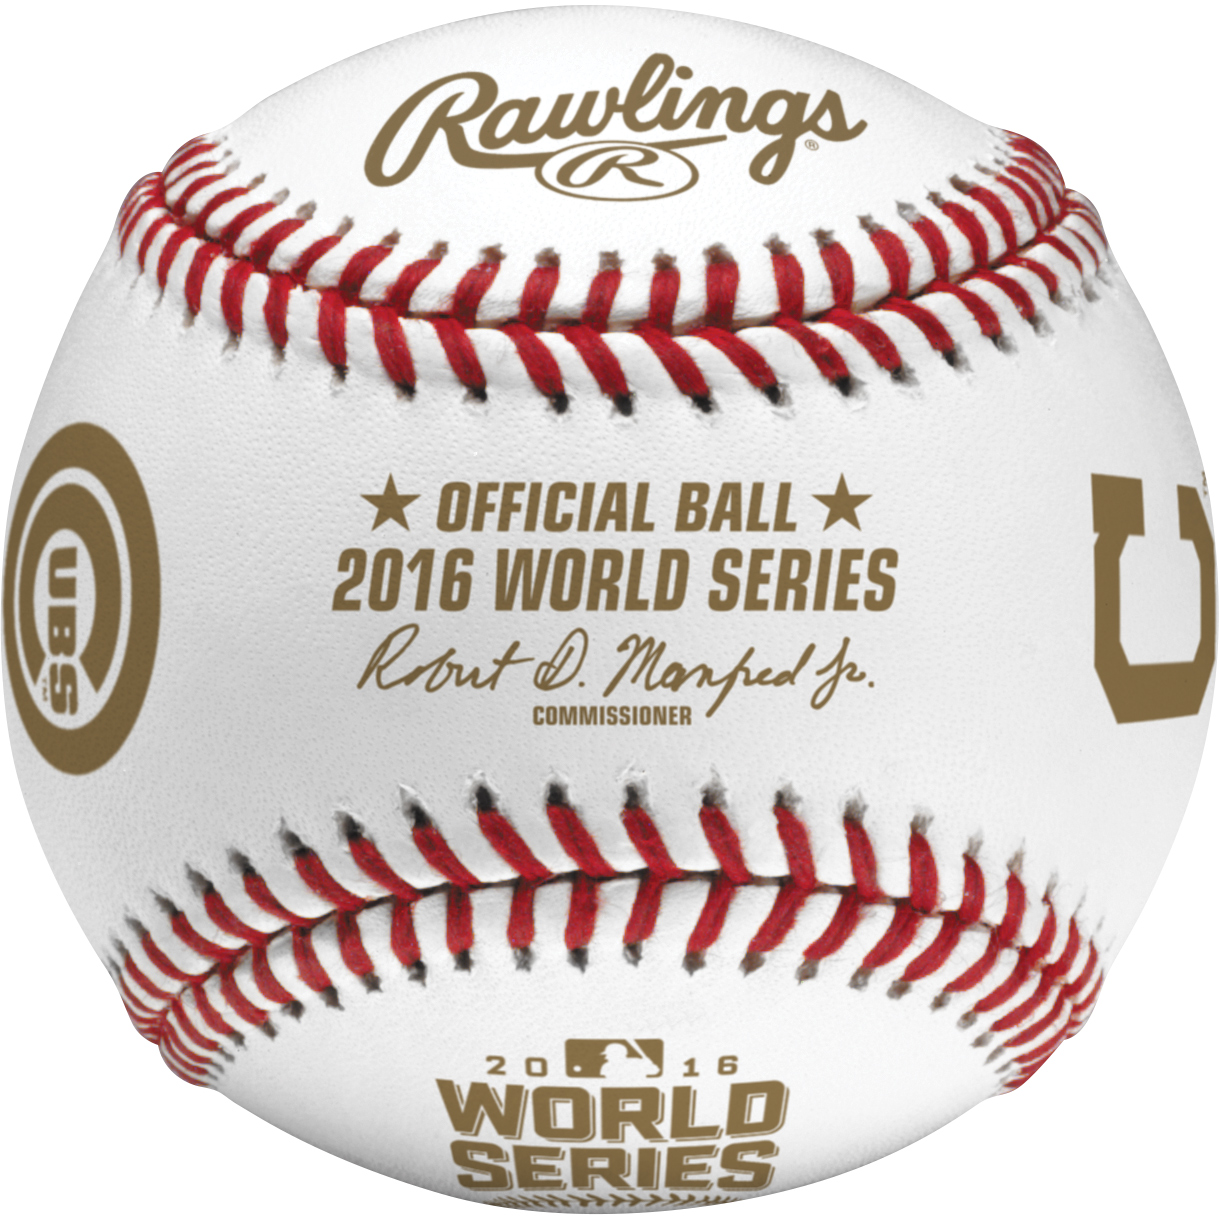 Cleveland Indians vs. Chicago Cubs Rawlings 2016 World Series Bound Dueling Baseball Cube - No Size